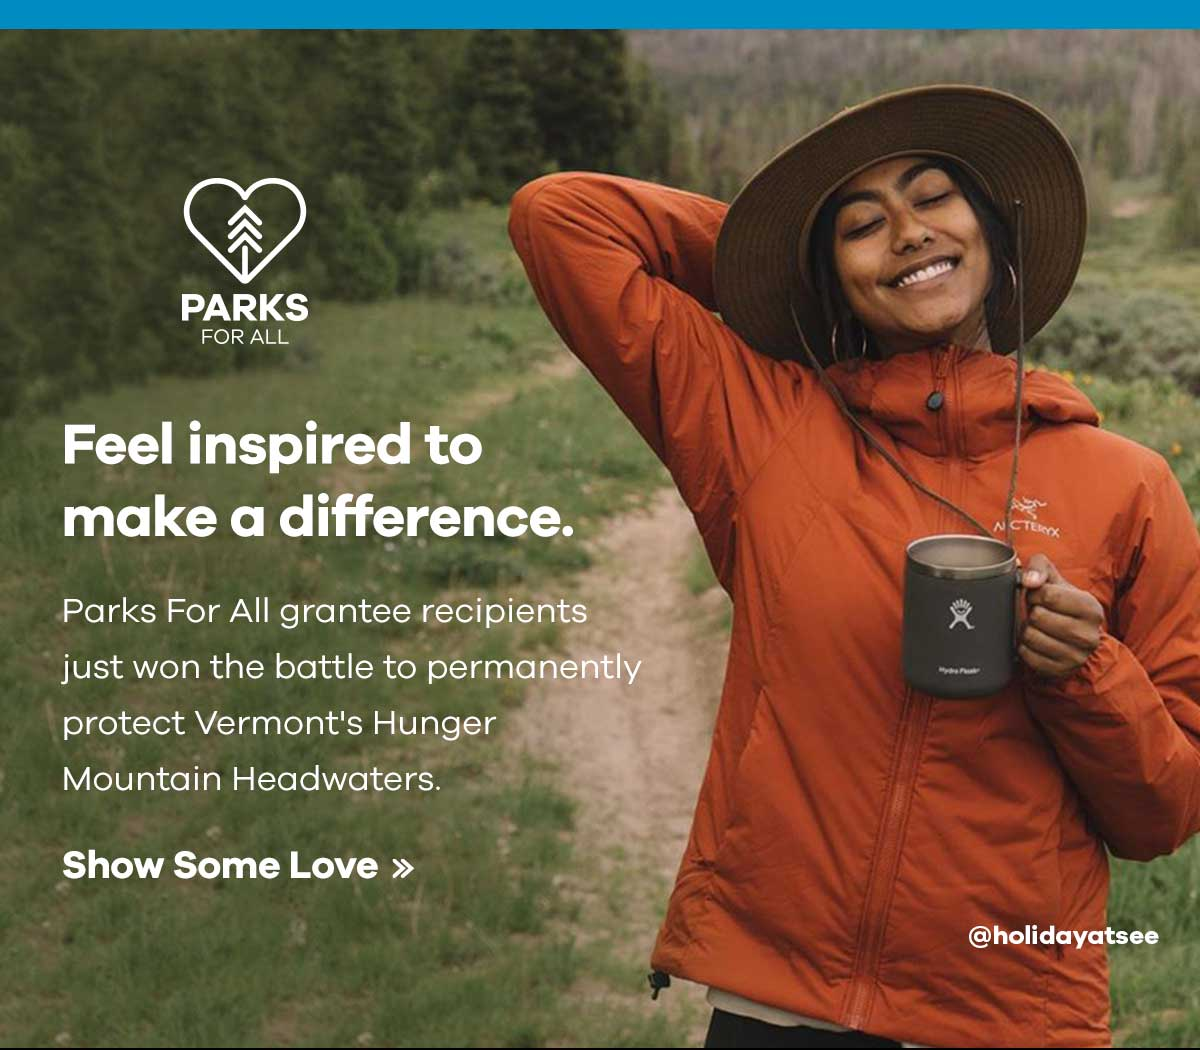 PARKS FOR ALL - Feel inspired to make a difference. - Parcks For All grantee recipients just won the battle to permantently protect Vermont''s Hunger Mountain Headwaters. | Shop Some Love >> @holidayatsee